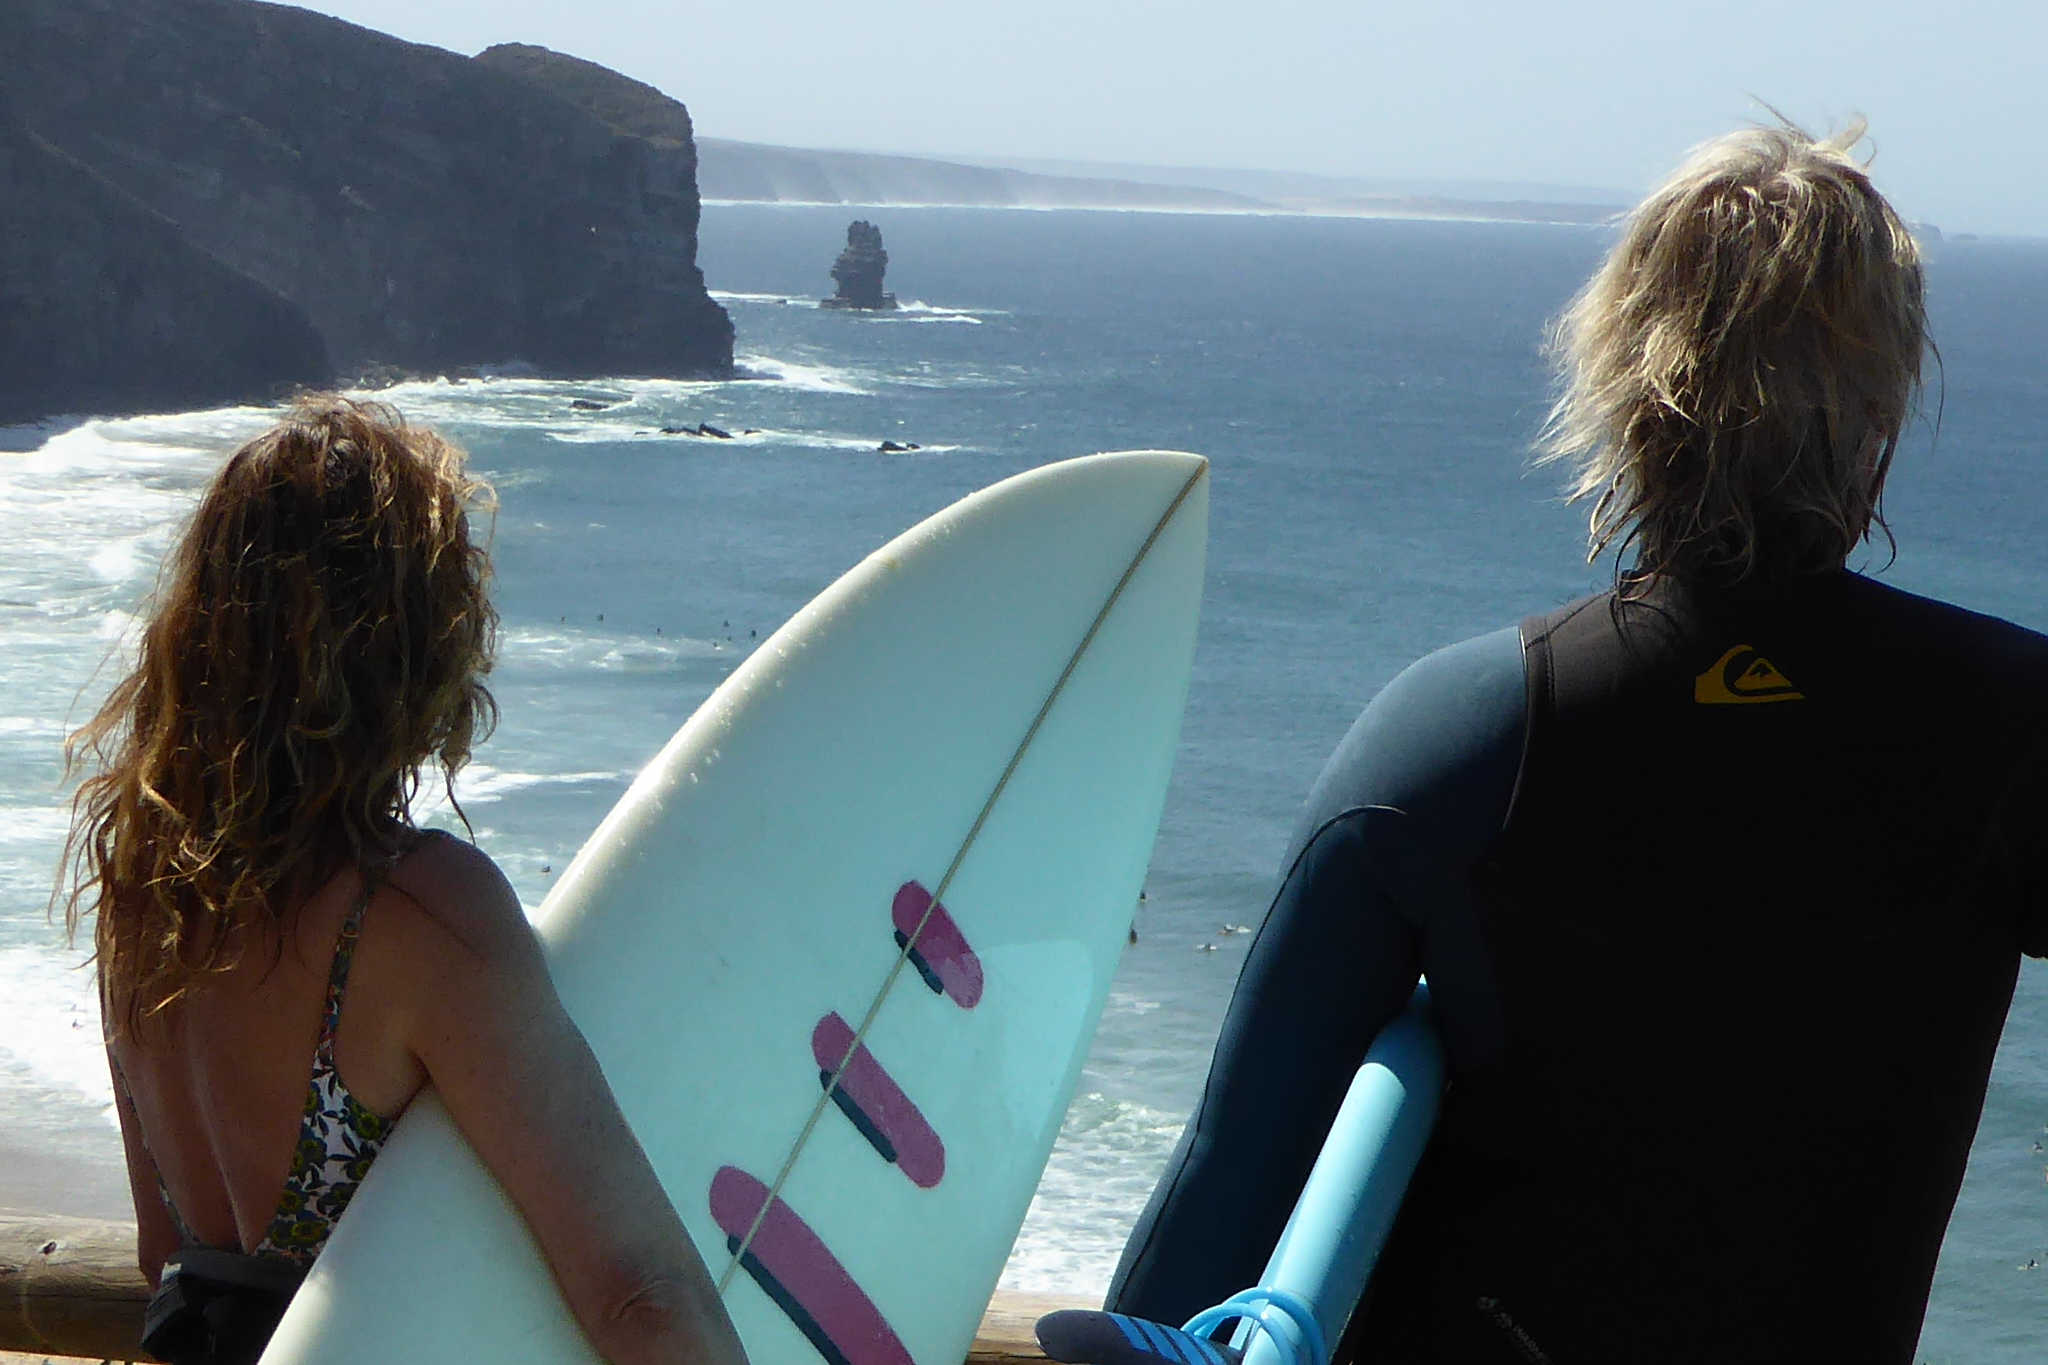 One-to-one surf guiding in the Algarve